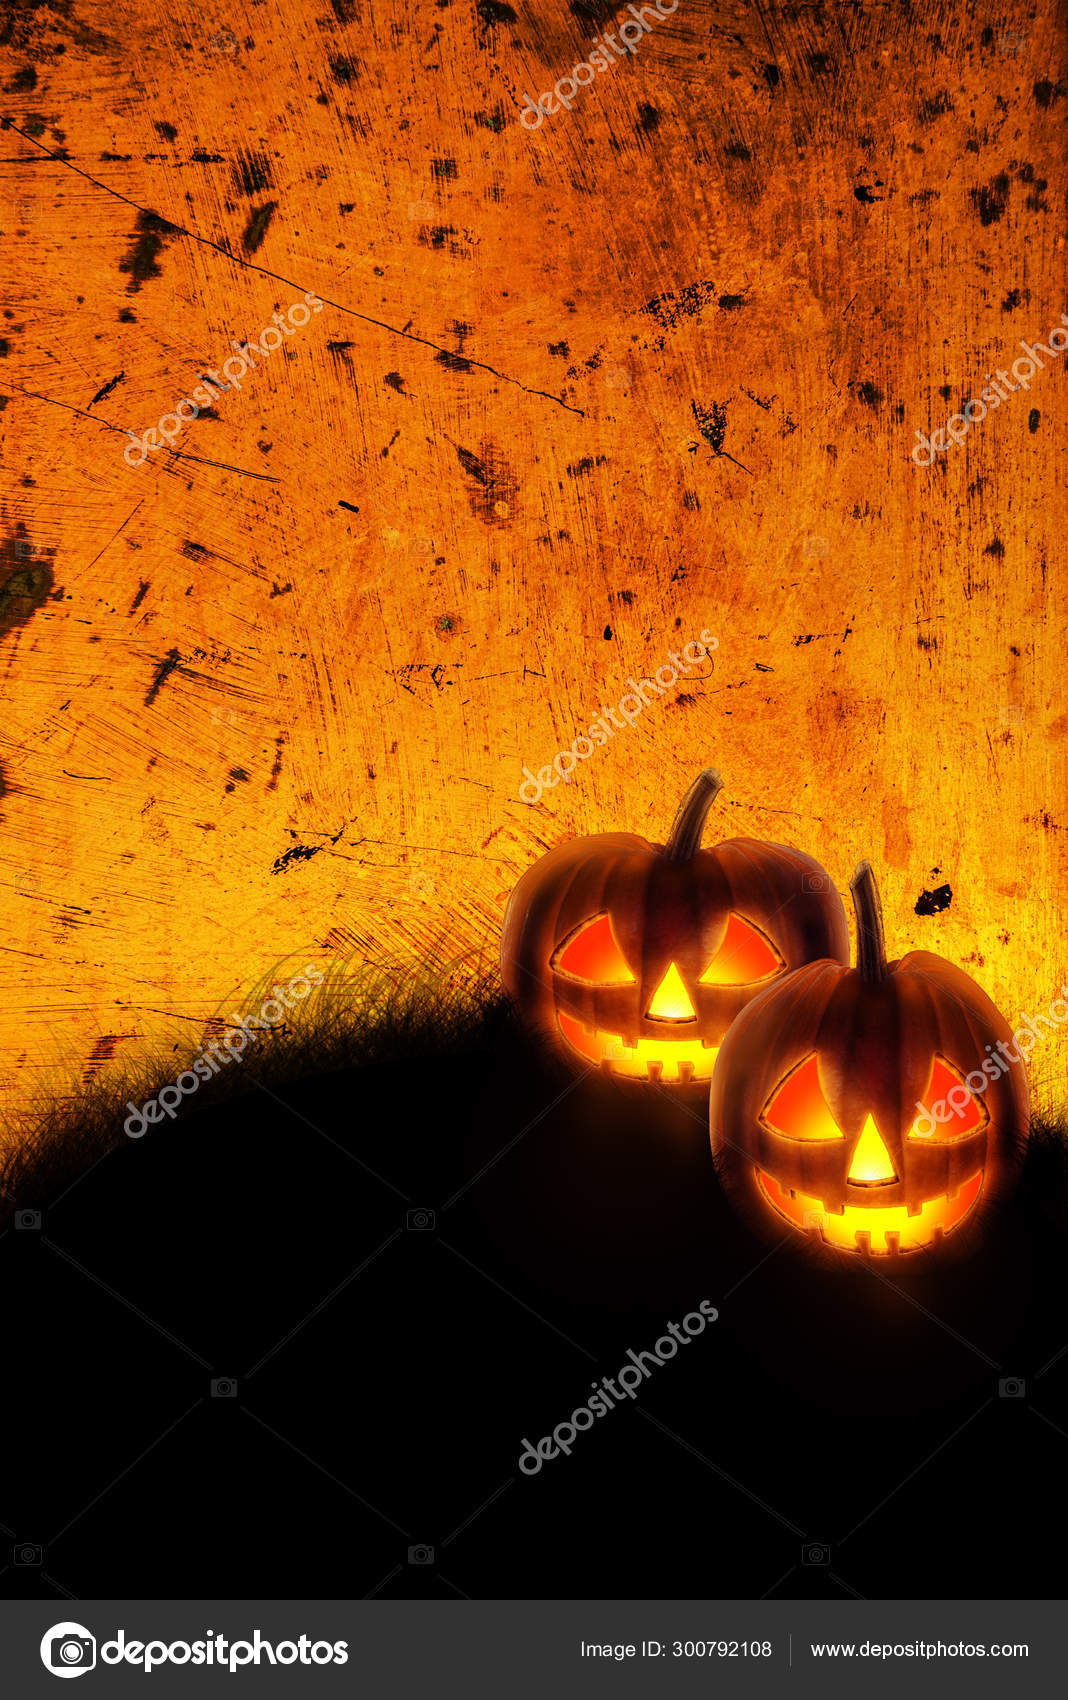 Halloween Background Wallpaper With Jack O Lantern Scary Pumpkin Stock Photo Image By C Hitdelight 300792108